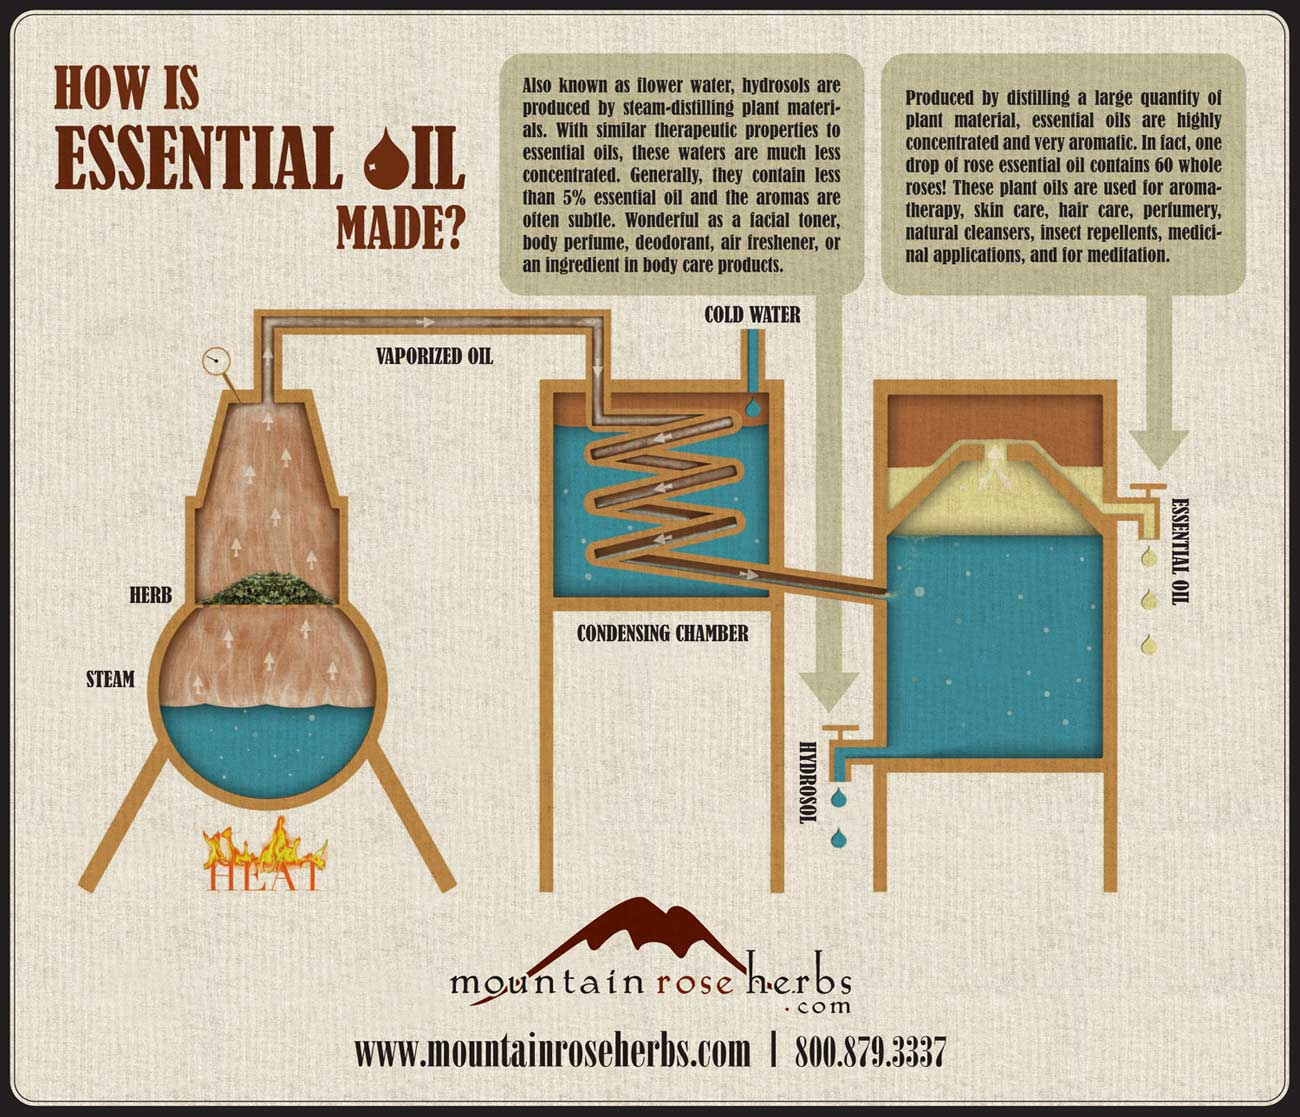 How is Essential Oil Made?